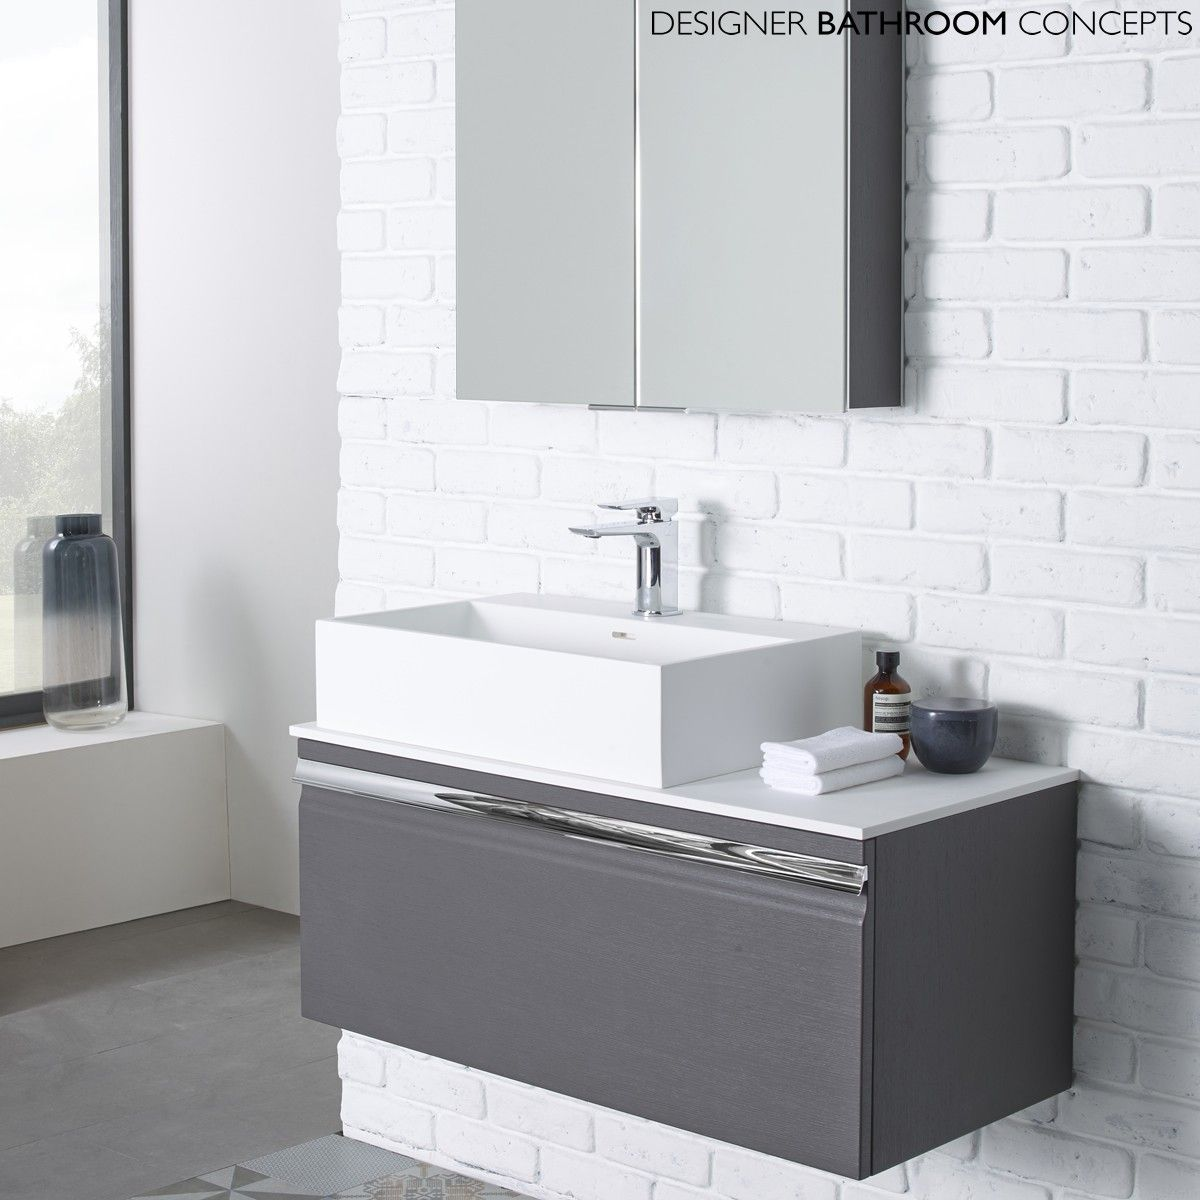 Bathroom Vanity Units, Vanity Units, Bathroom Sink Units